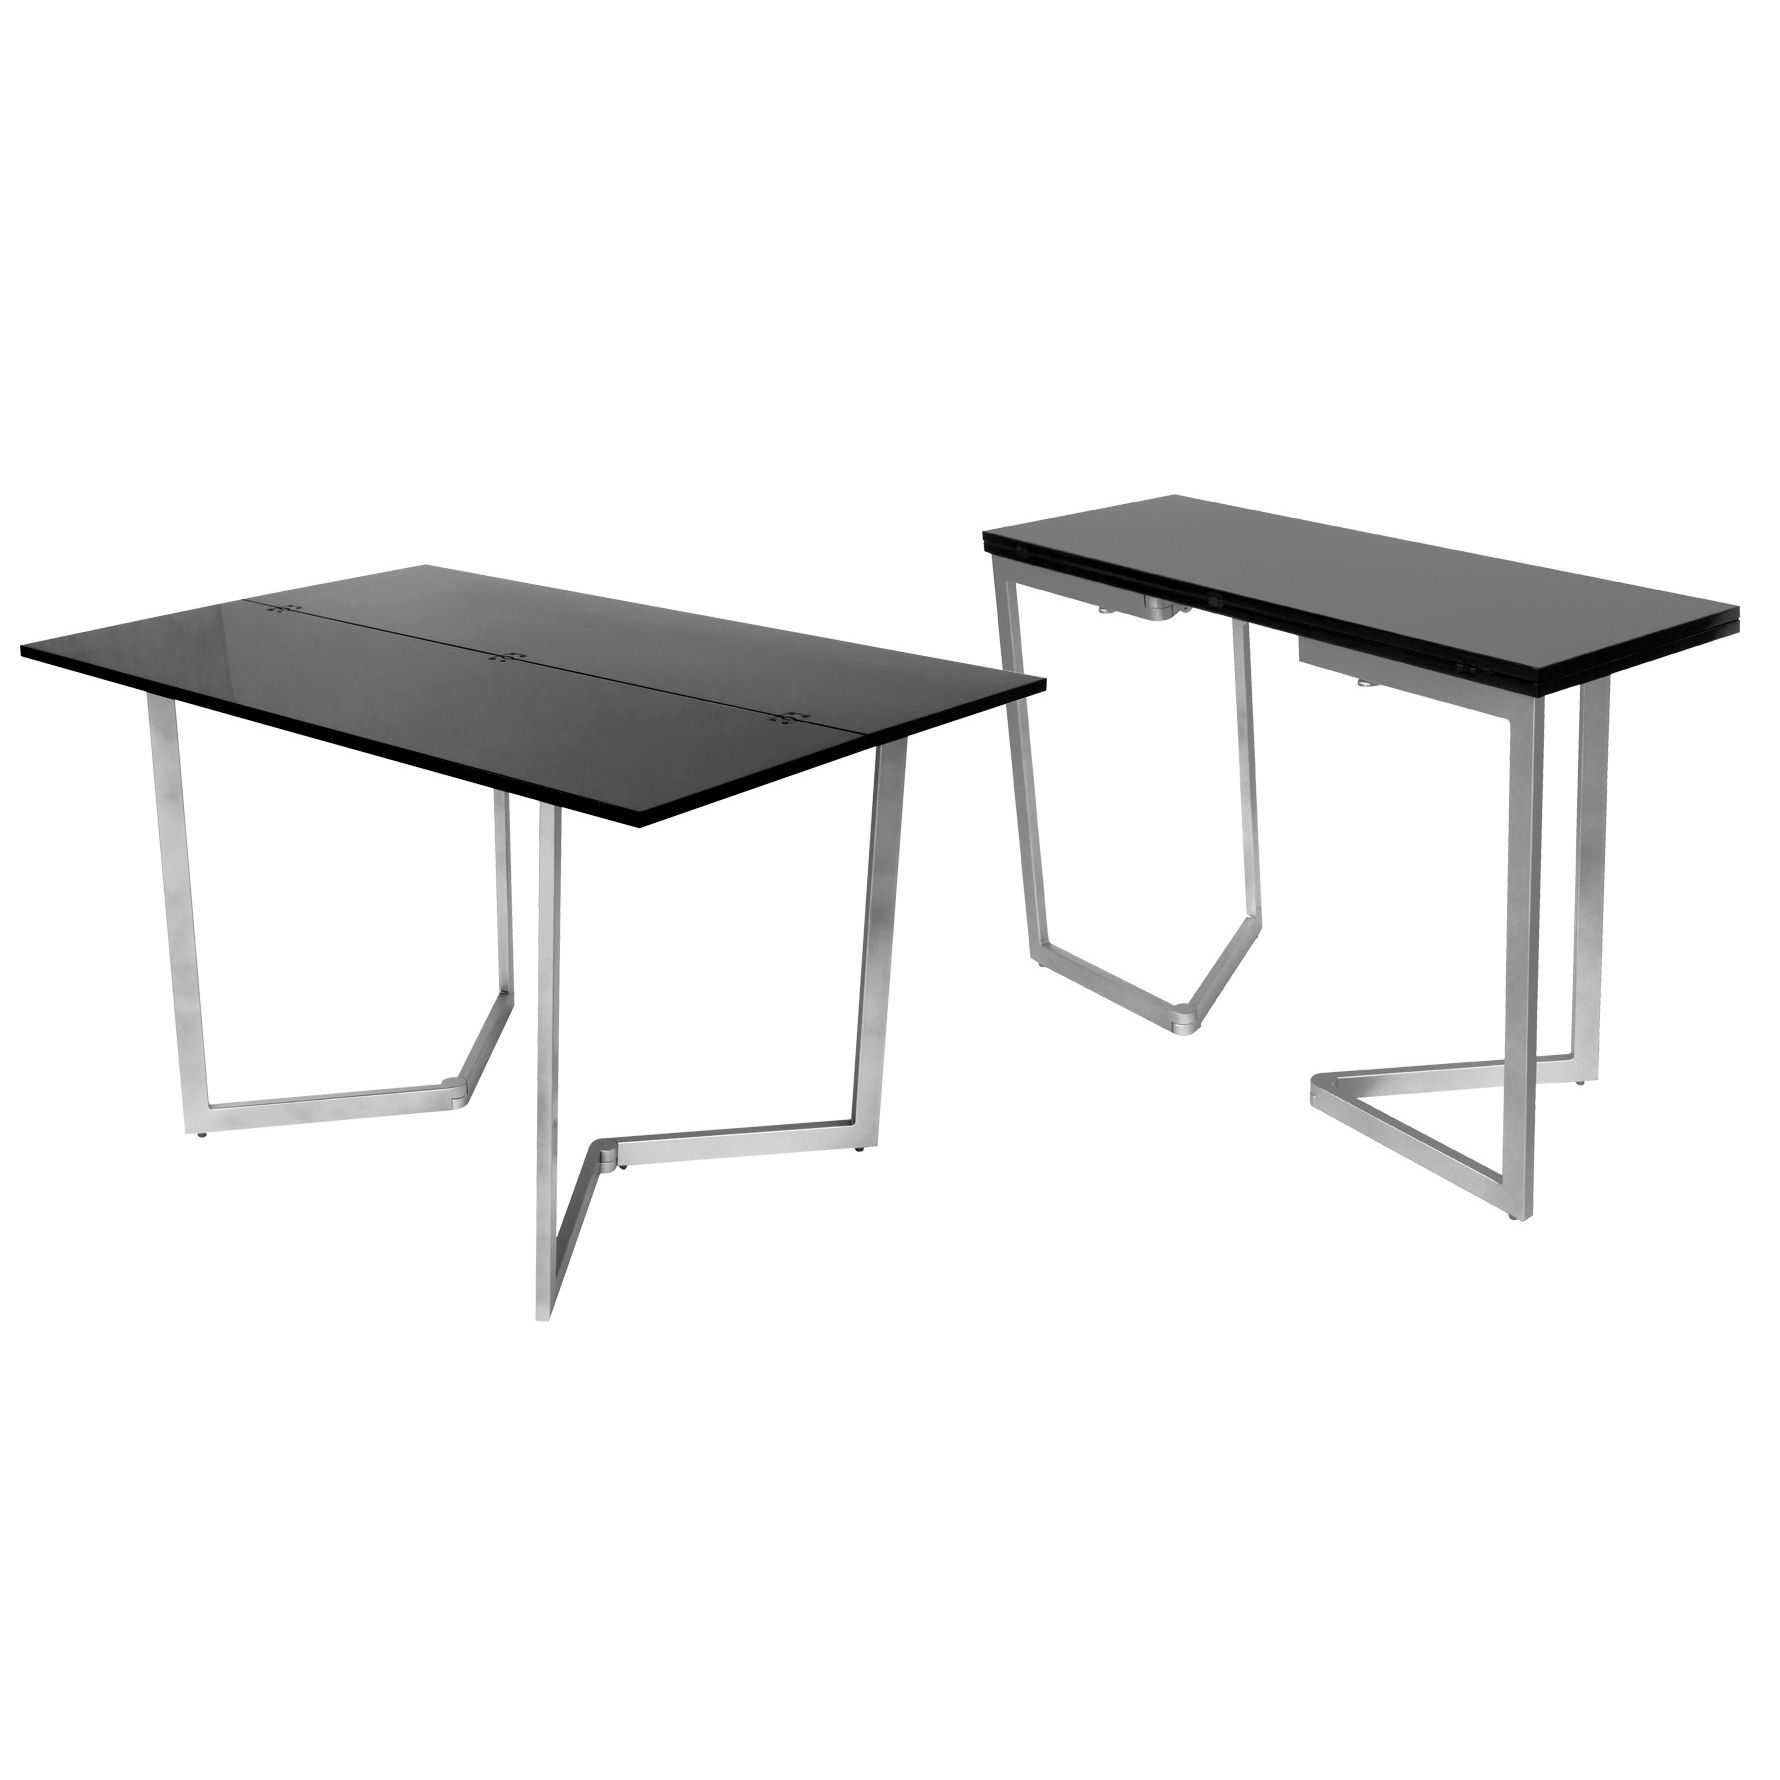 deco in paris table console extensible noire laquee talia tab console noir. Black Bedroom Furniture Sets. Home Design Ideas